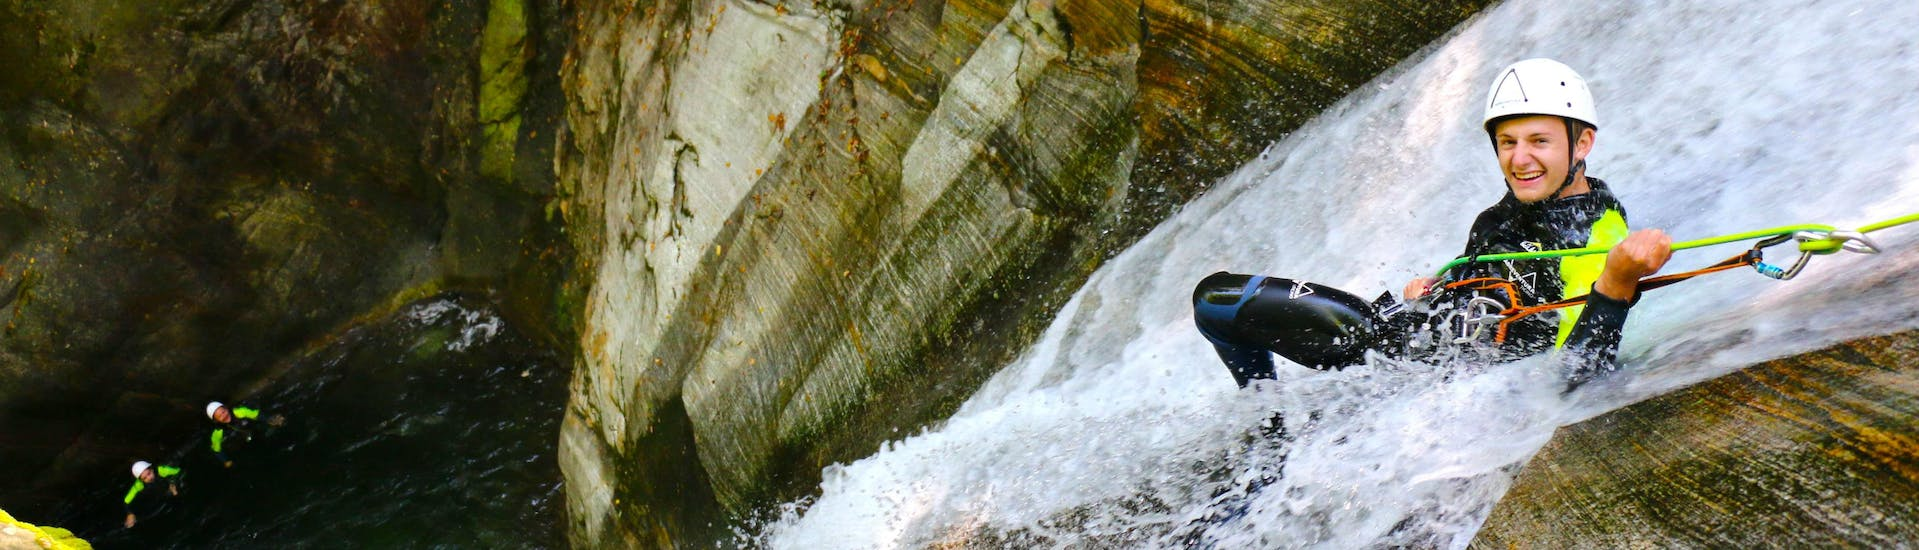 Basic Canyoning in Corippo in Ticino with Purelements Ticino - Hero image